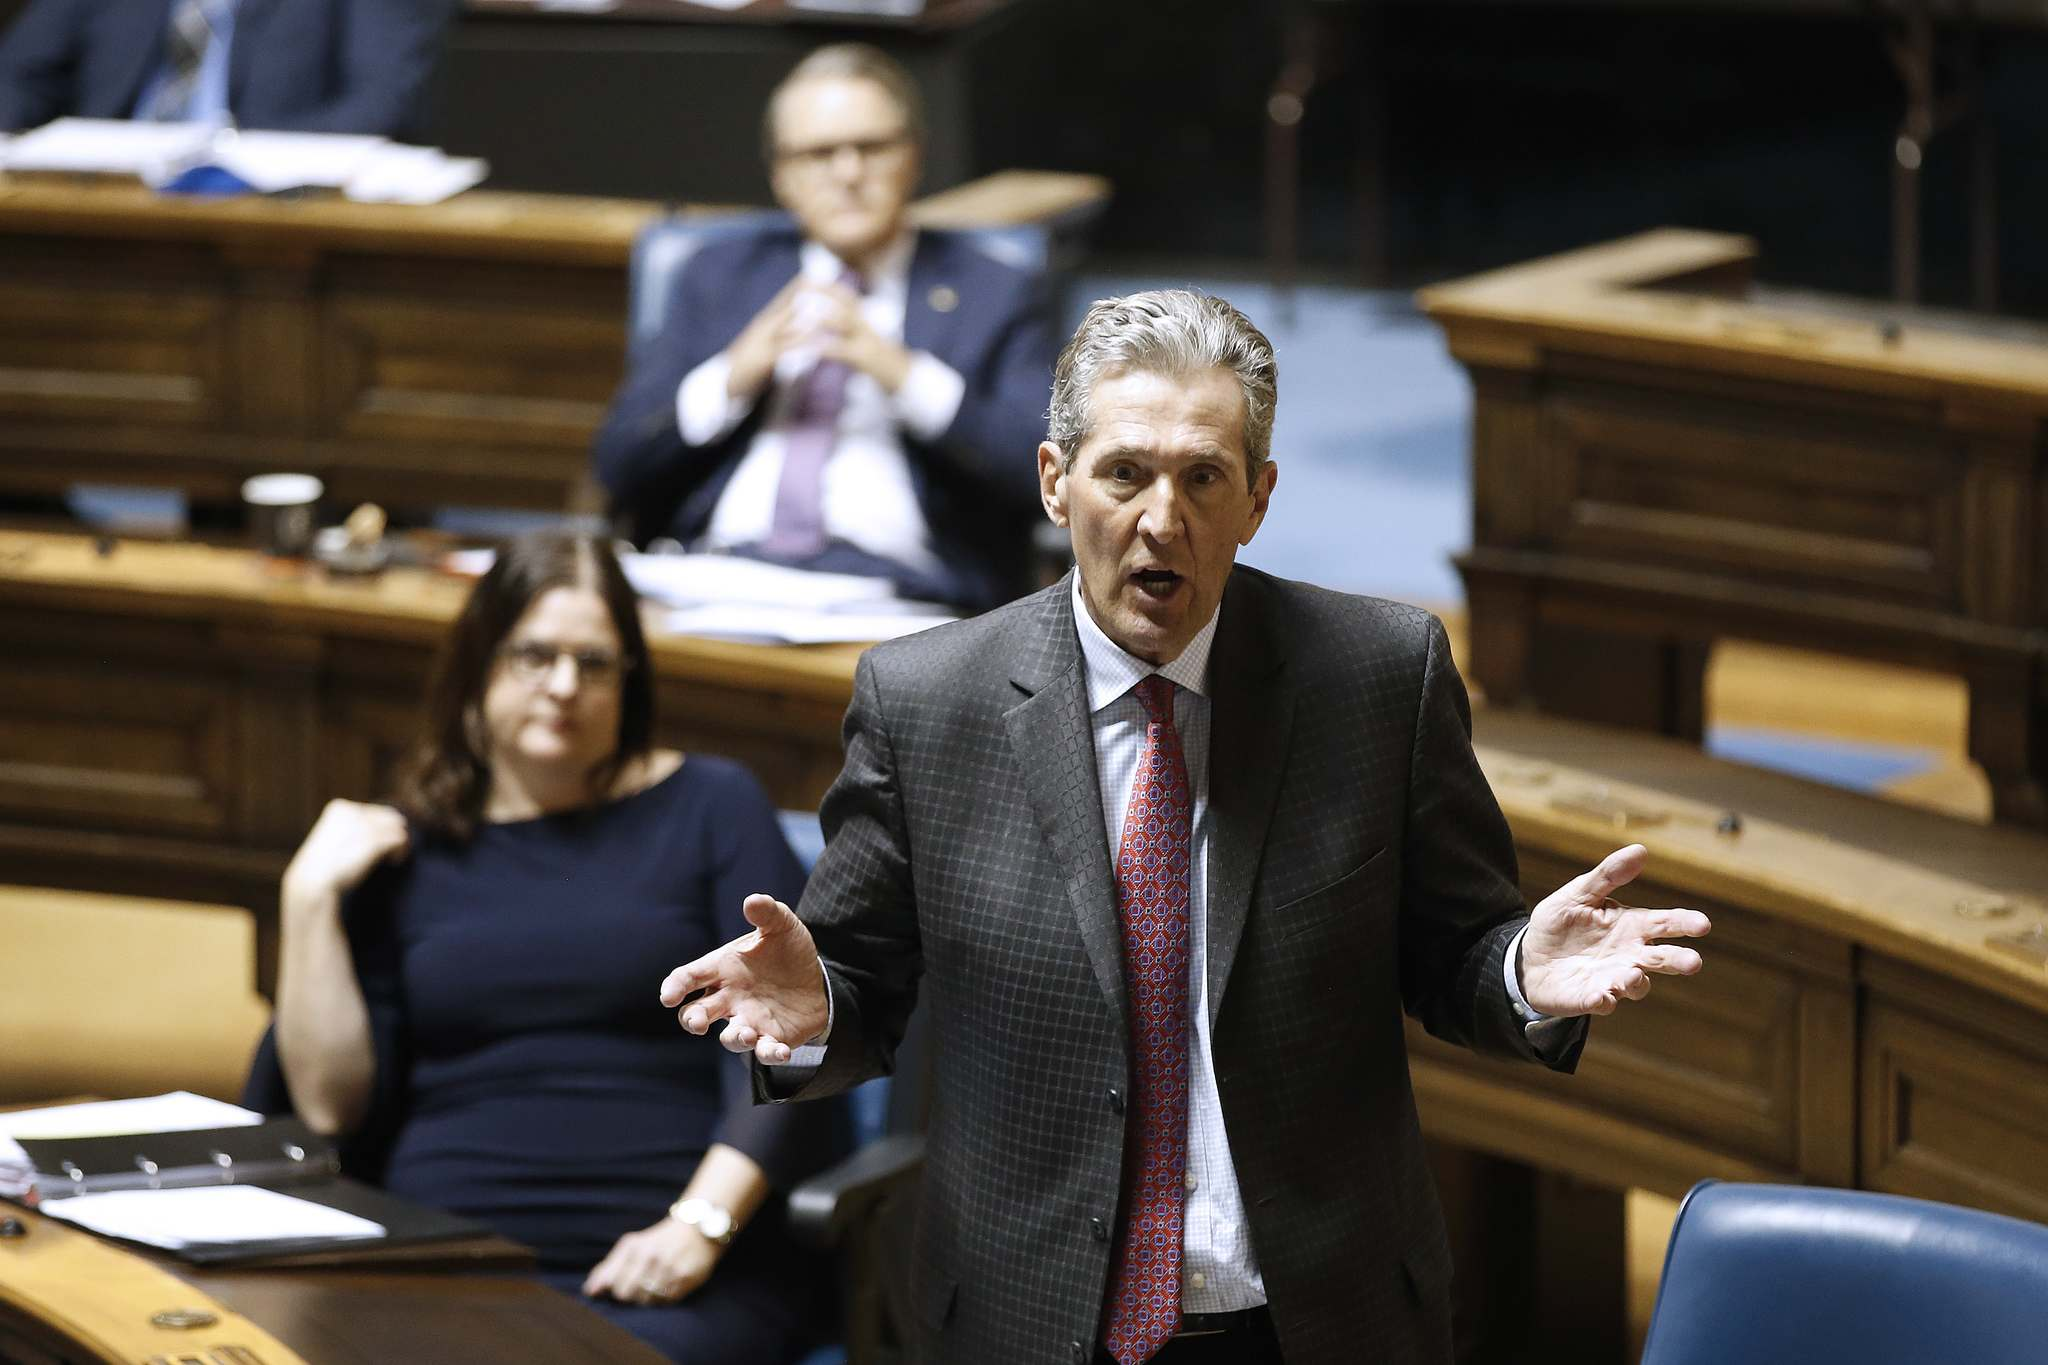 Premier Brian Pallister disputed that his government sought to cover up the value of the Saskatchewan deals. (John Woods / Winnipeg Free Press)</p>